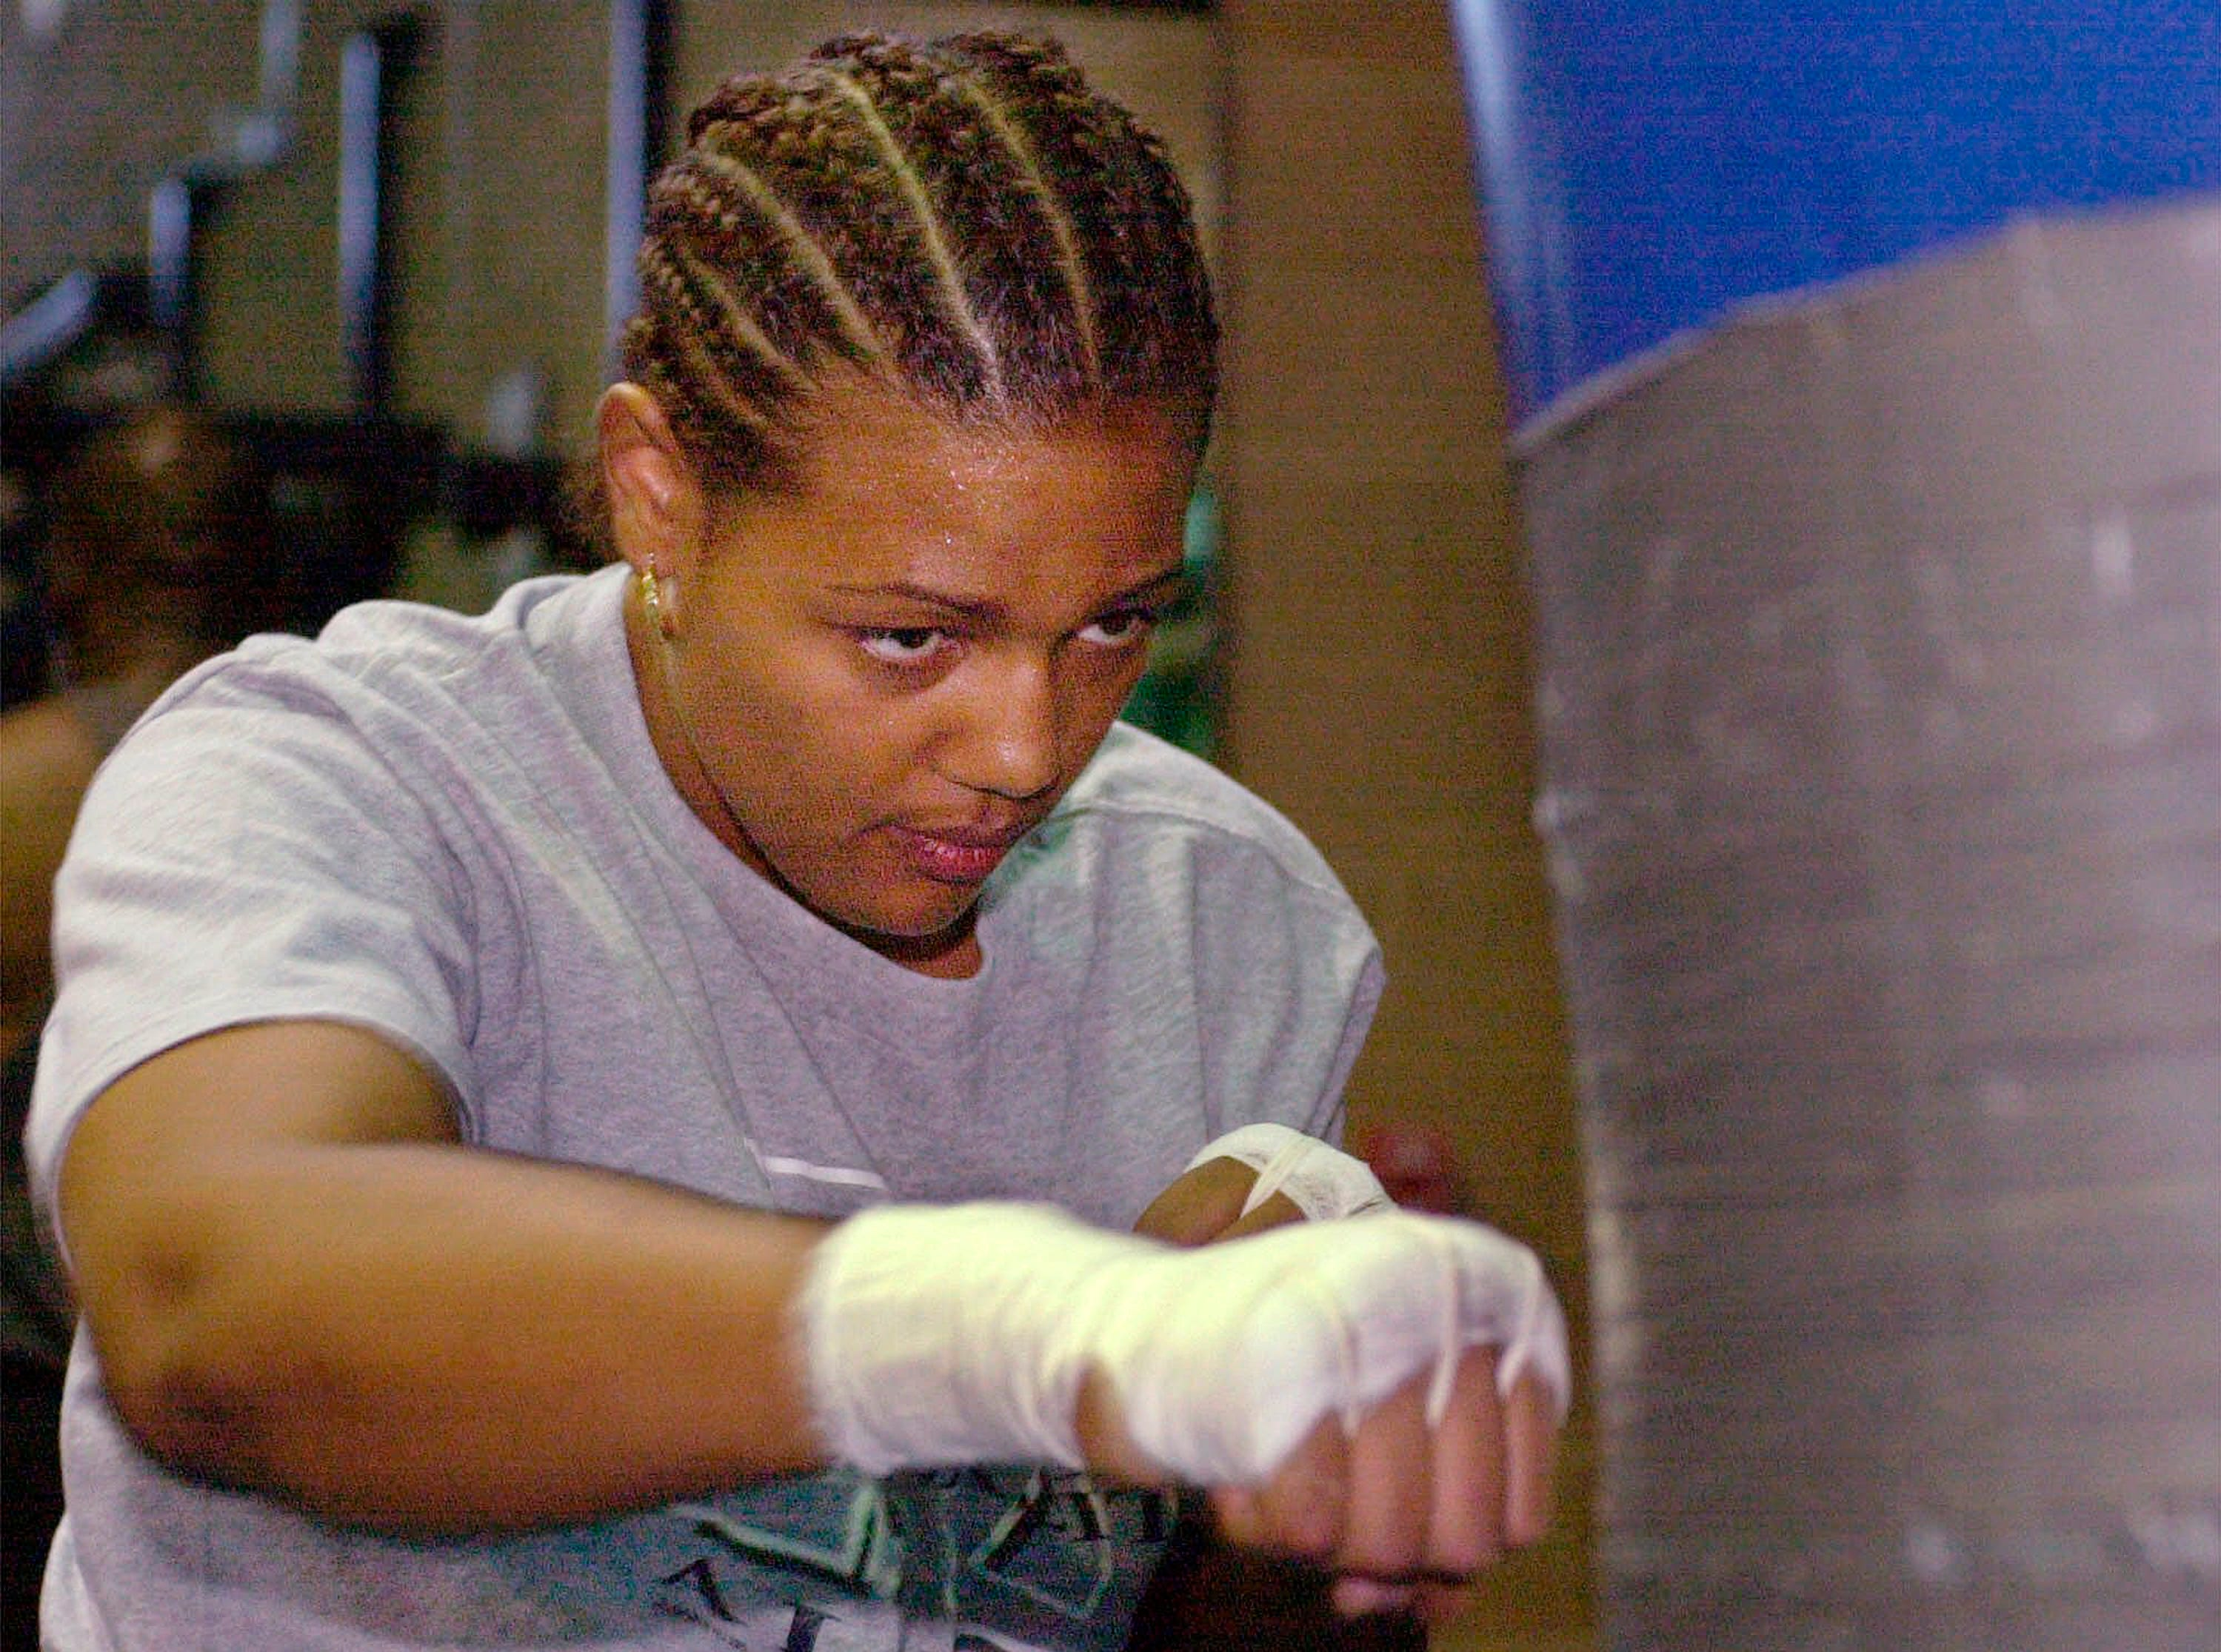 In this June 16, 2000, file photo, Freeda Foreman works out in a gym in Las Vegas. The 42-year-old daughter of former heavyweight champion George Foreman died at a Houston-area home. The Harris County sheriff's office said deputies were called Friday, March 8, 2019, to the home where EMS had determined Freeda George Foreman was dead.